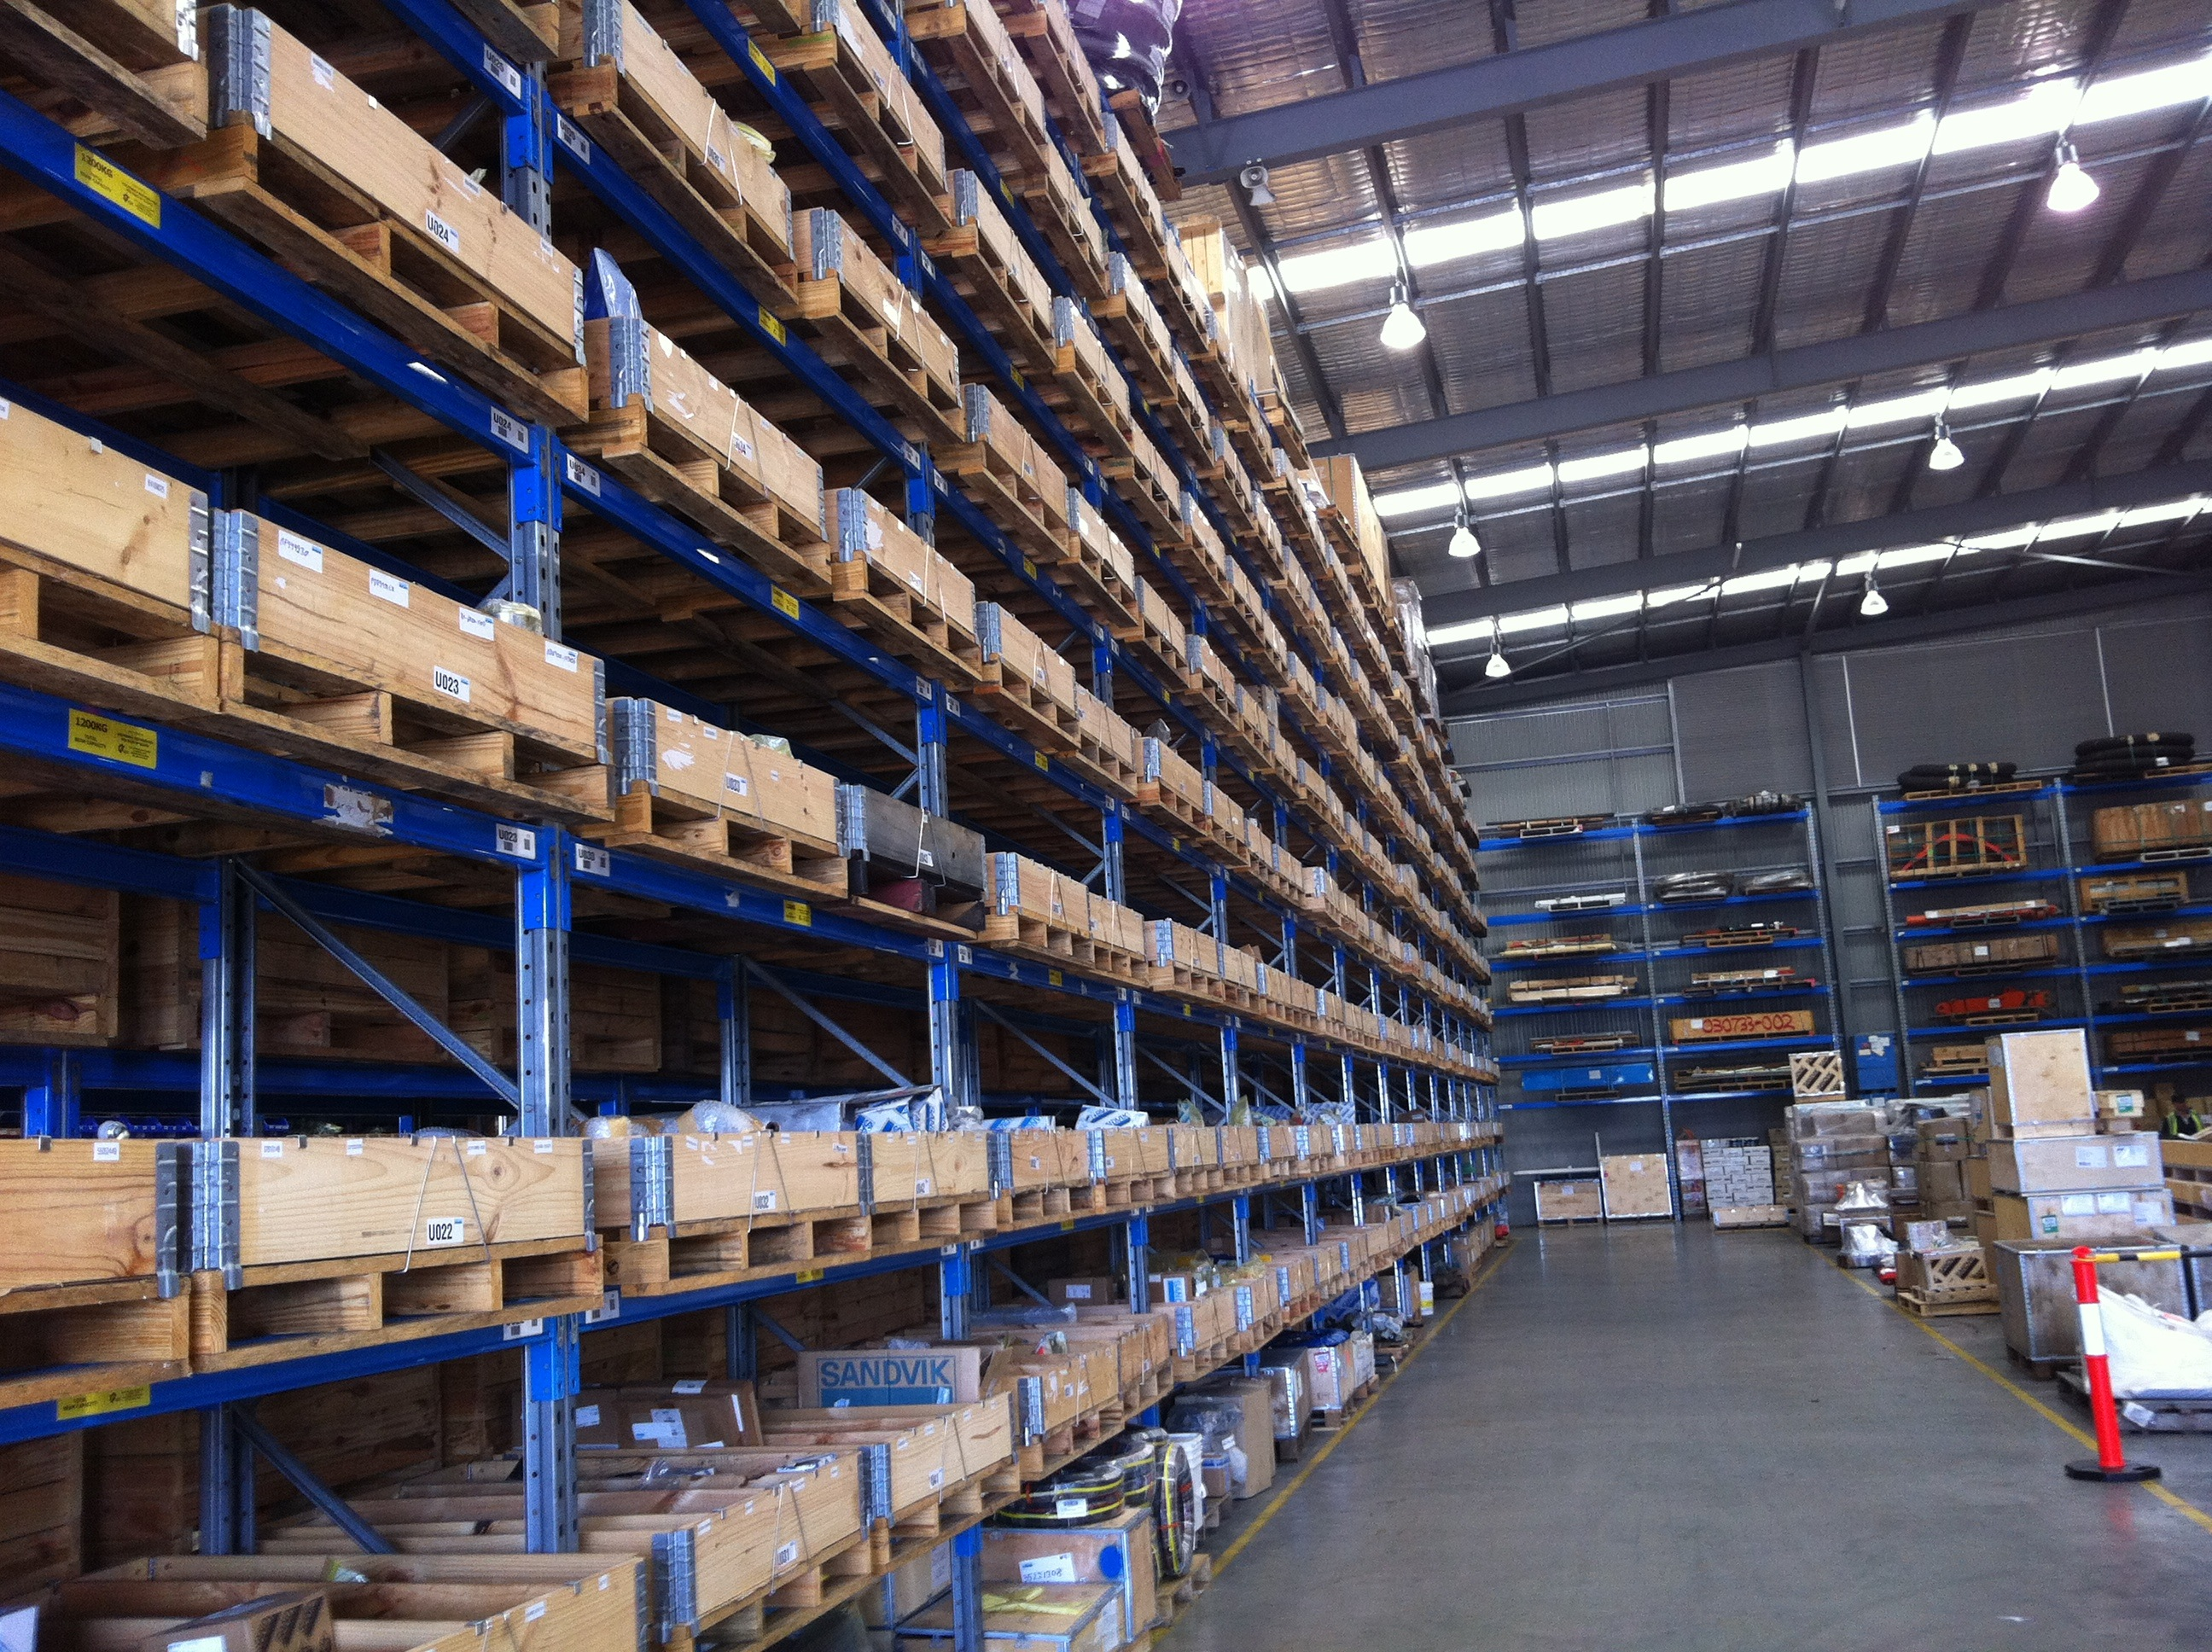 A warehouse using pallet collars